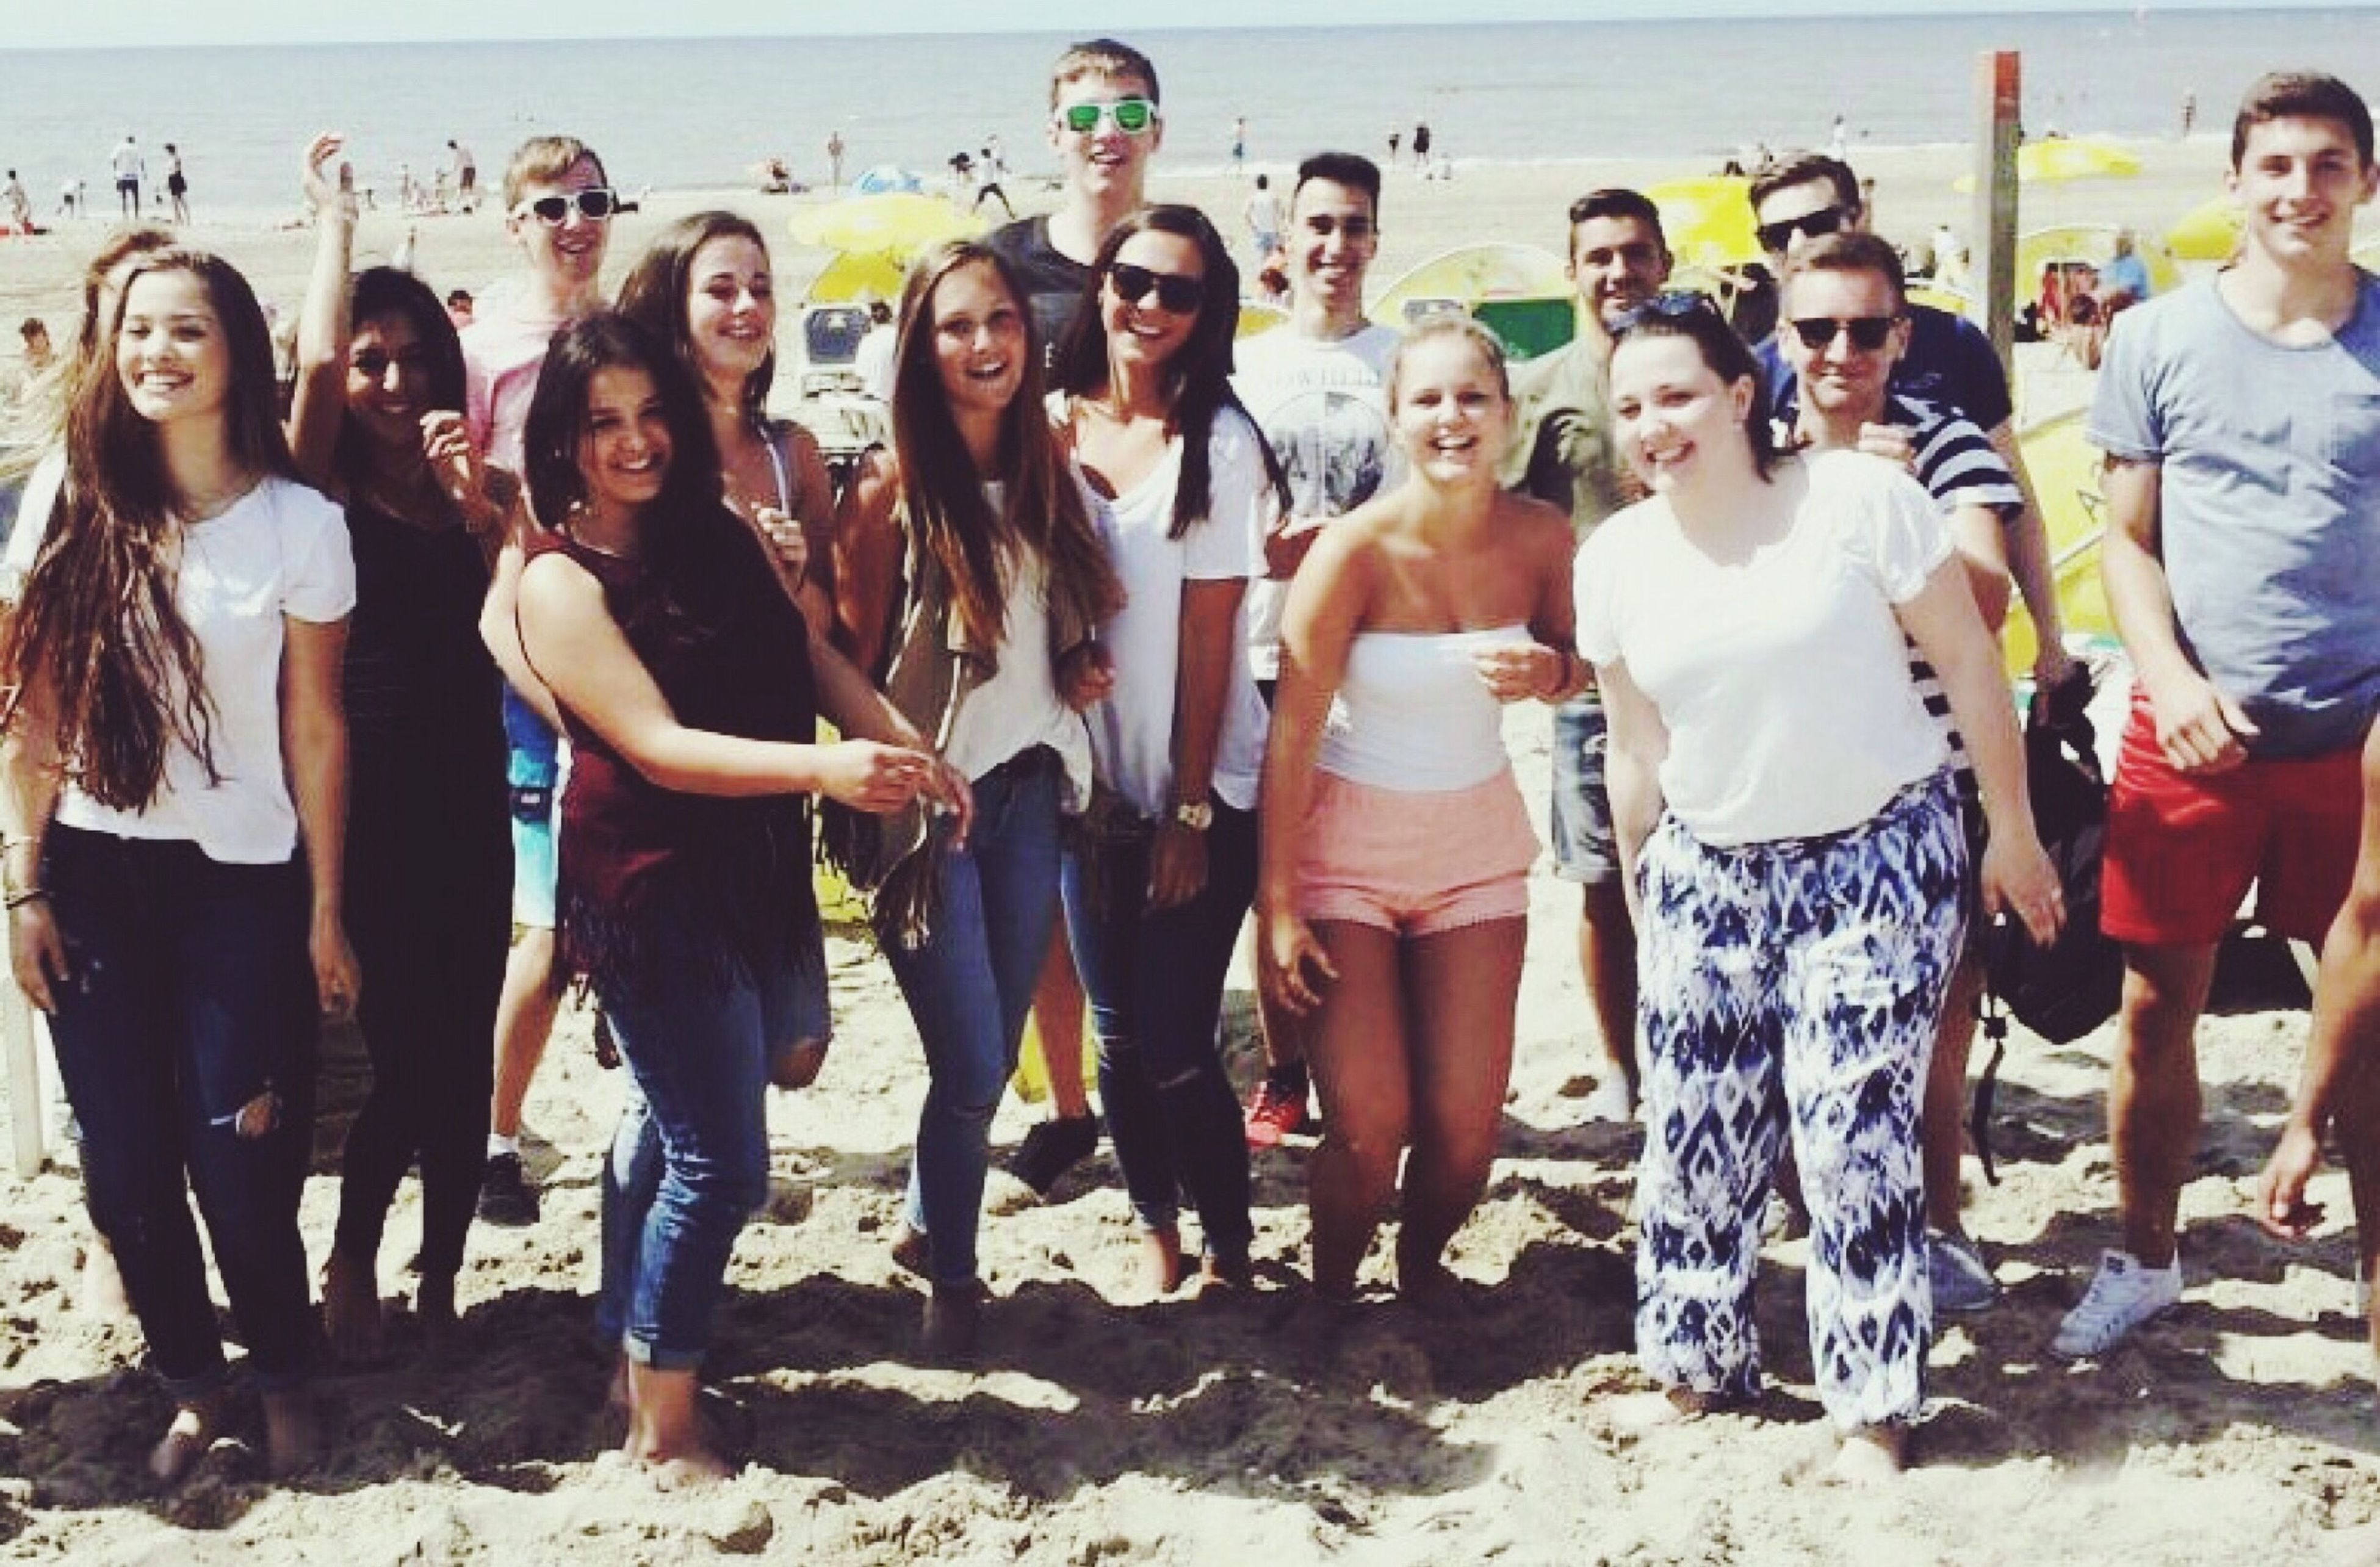 togetherness, lifestyles, large group of people, leisure activity, person, men, vacations, beach, friendship, bonding, water, enjoyment, standing, tourist, love, sea, casual clothing, tourism, mixed age range